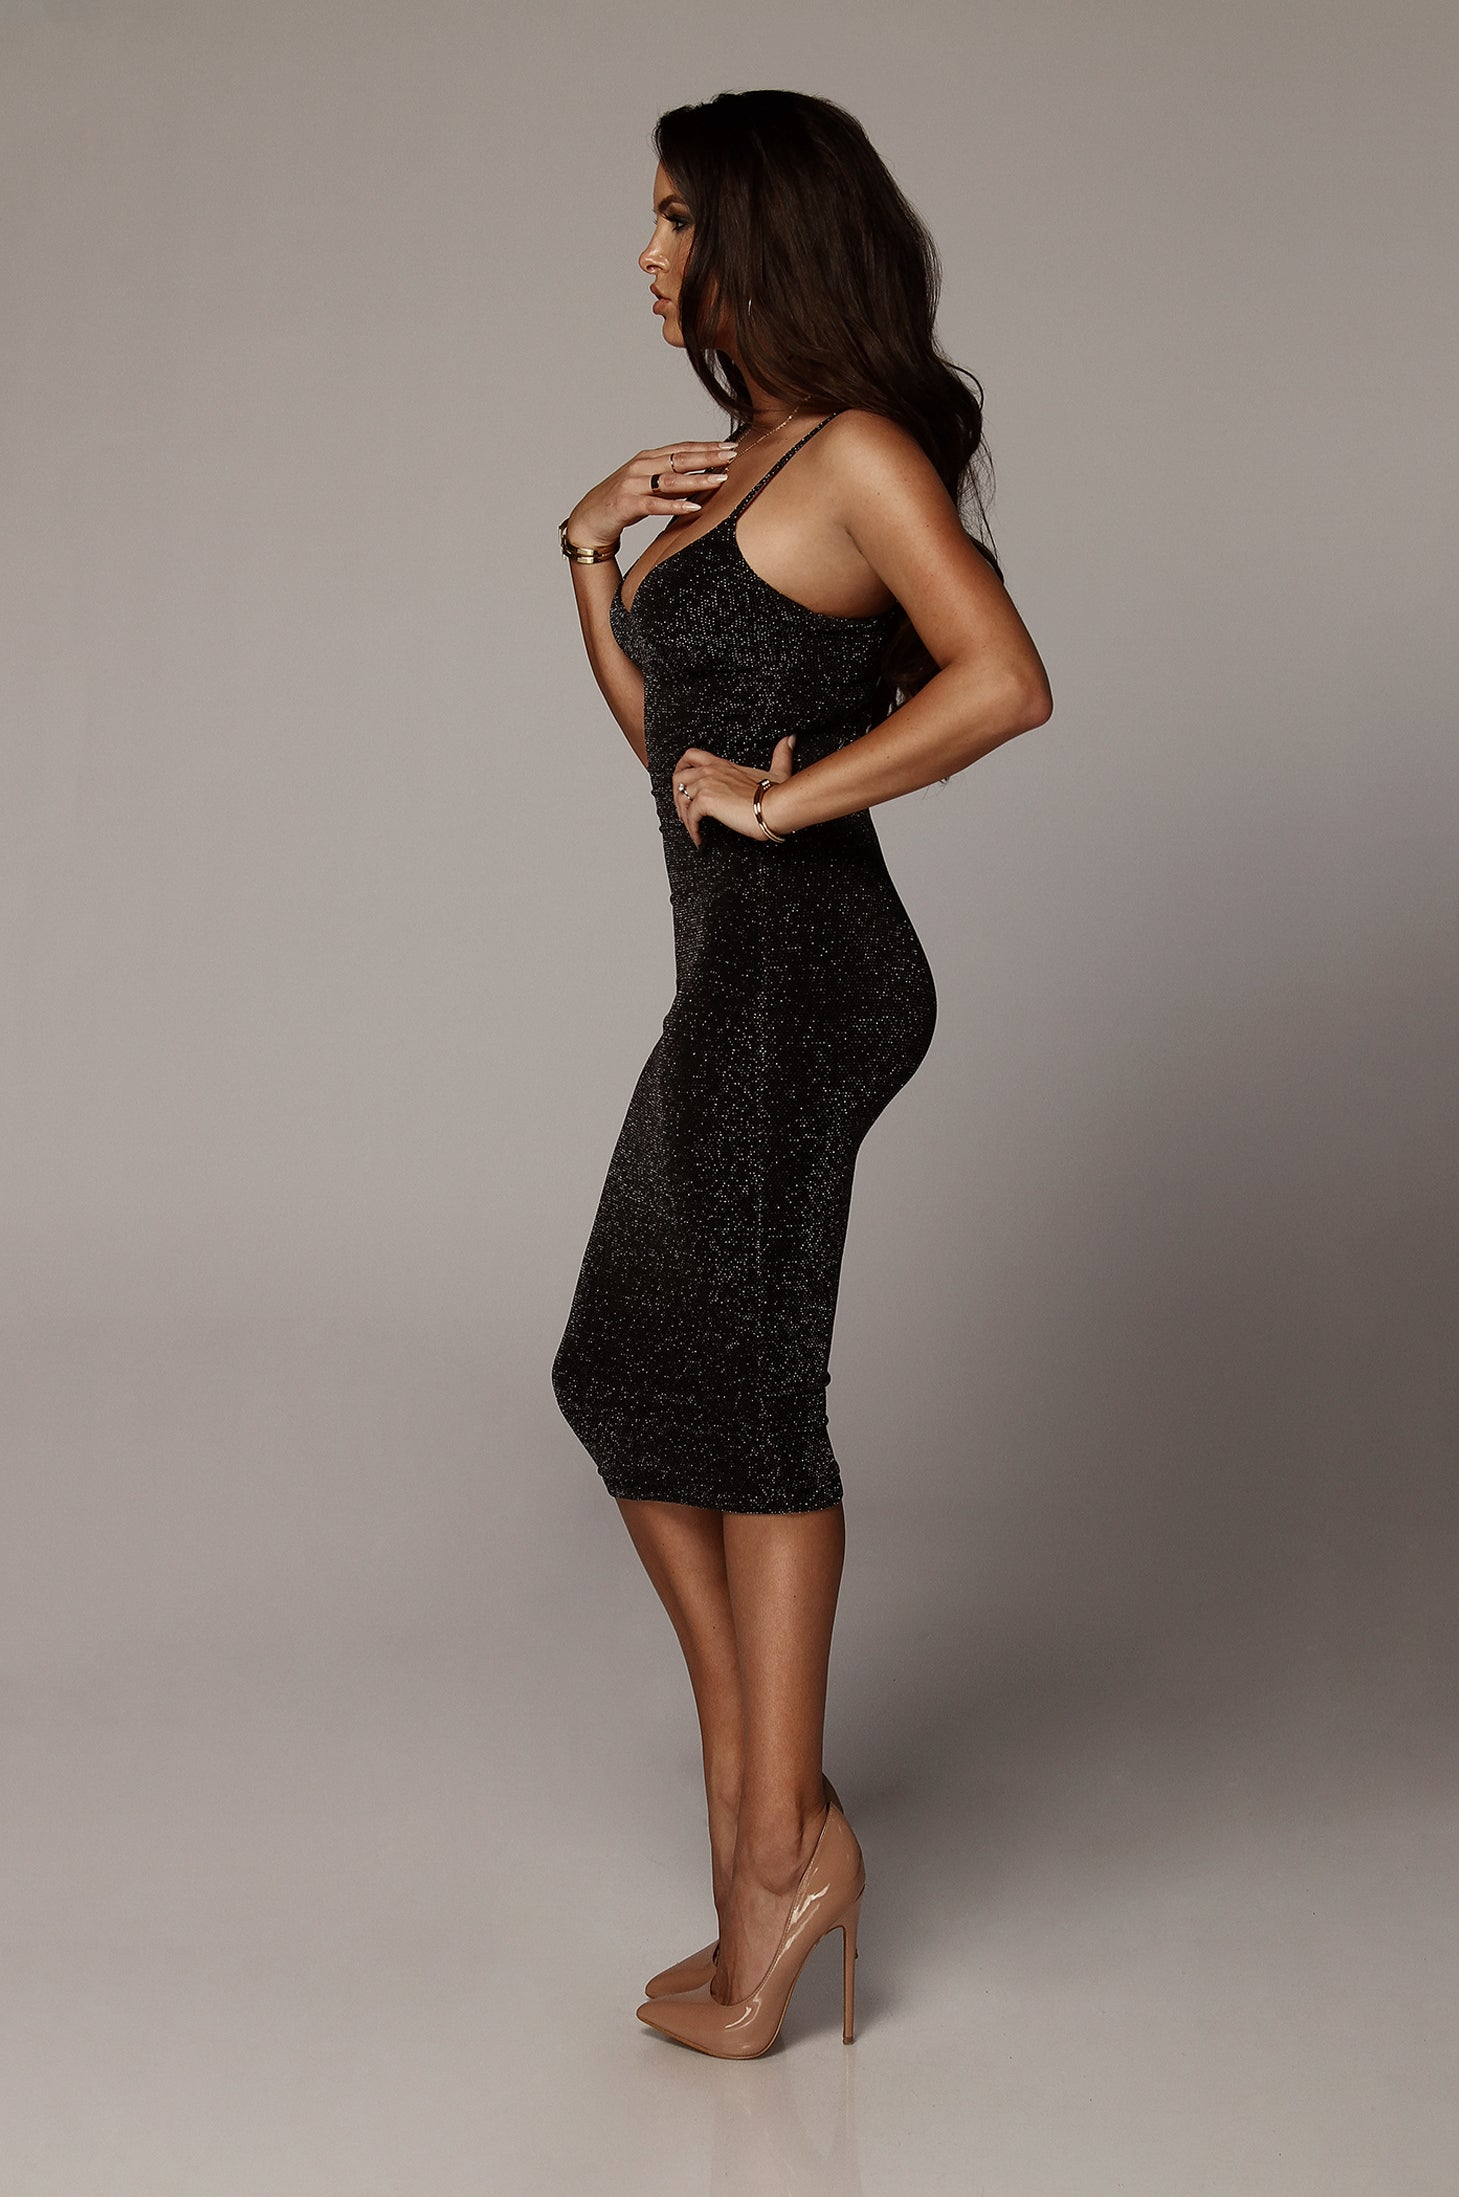 Black and Silver Showoff Soft Sparkle Dress